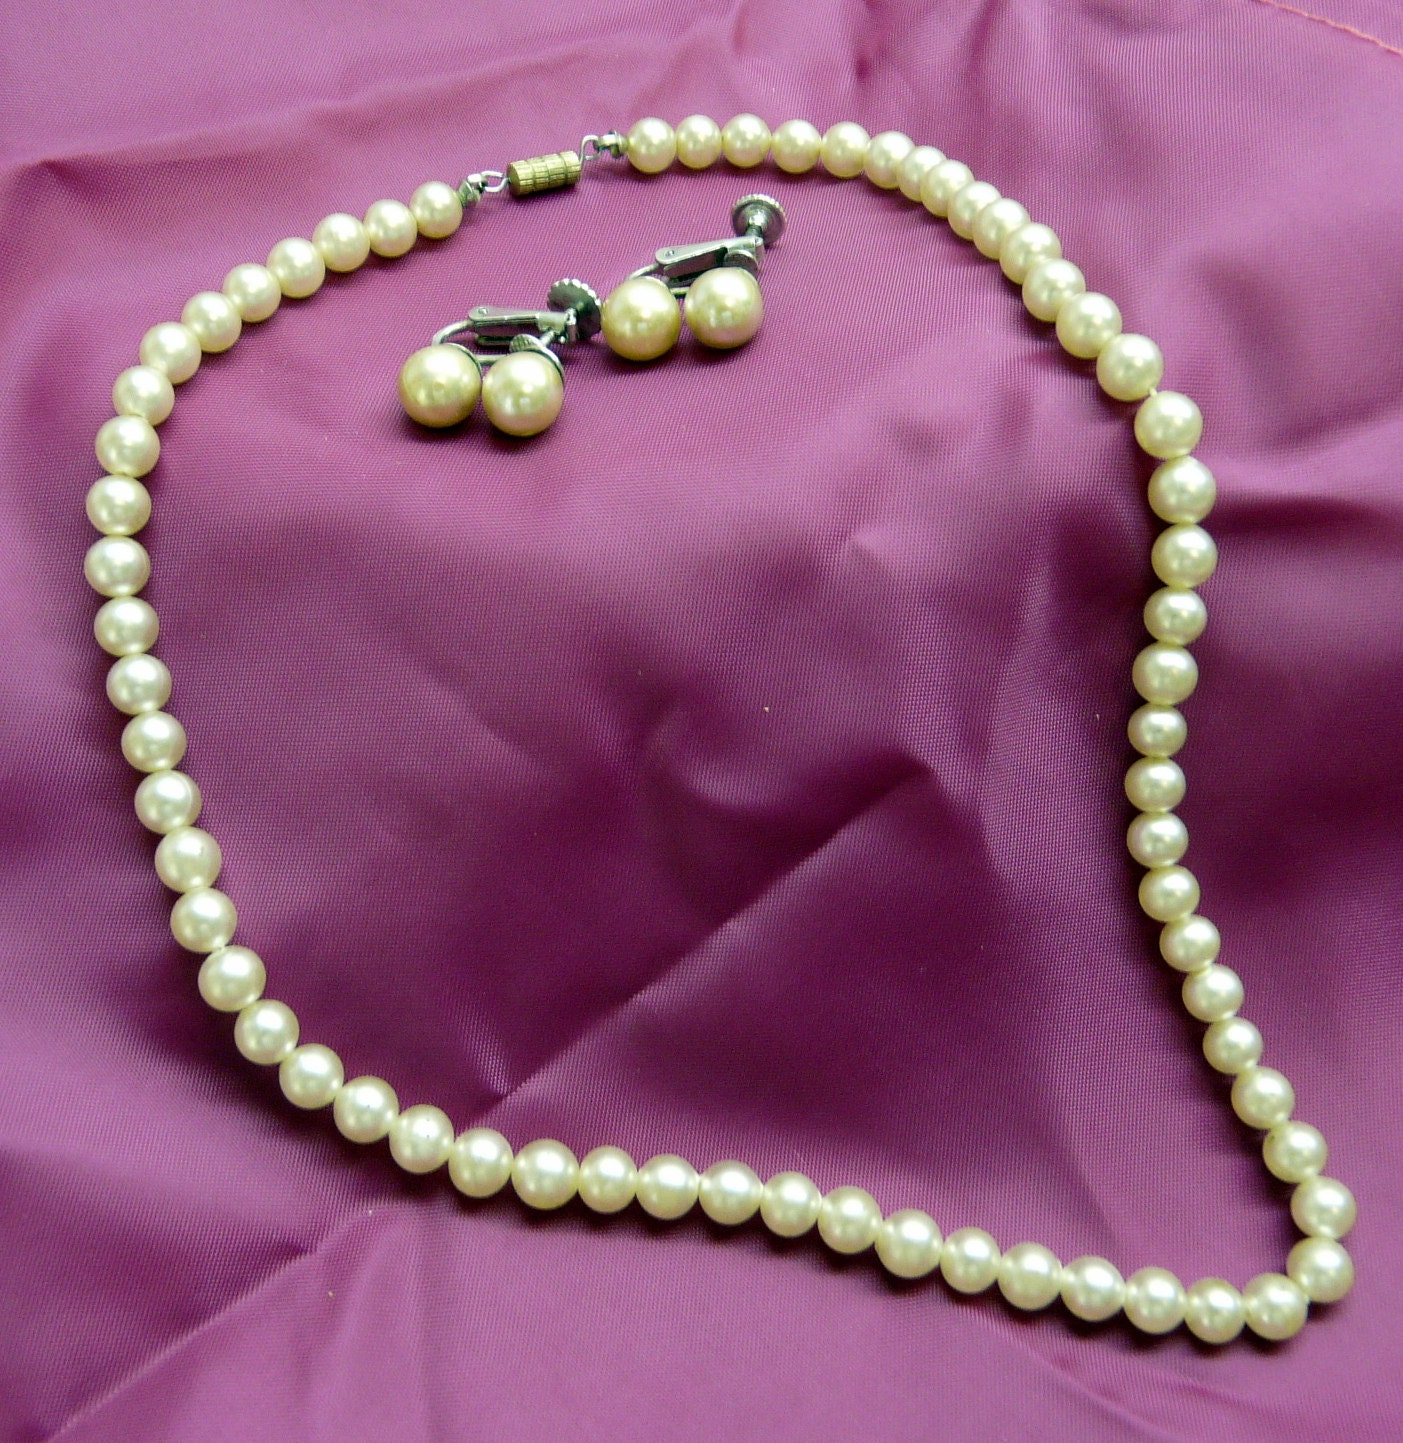 Vintage 1950s Faux pearl necklace and earrings